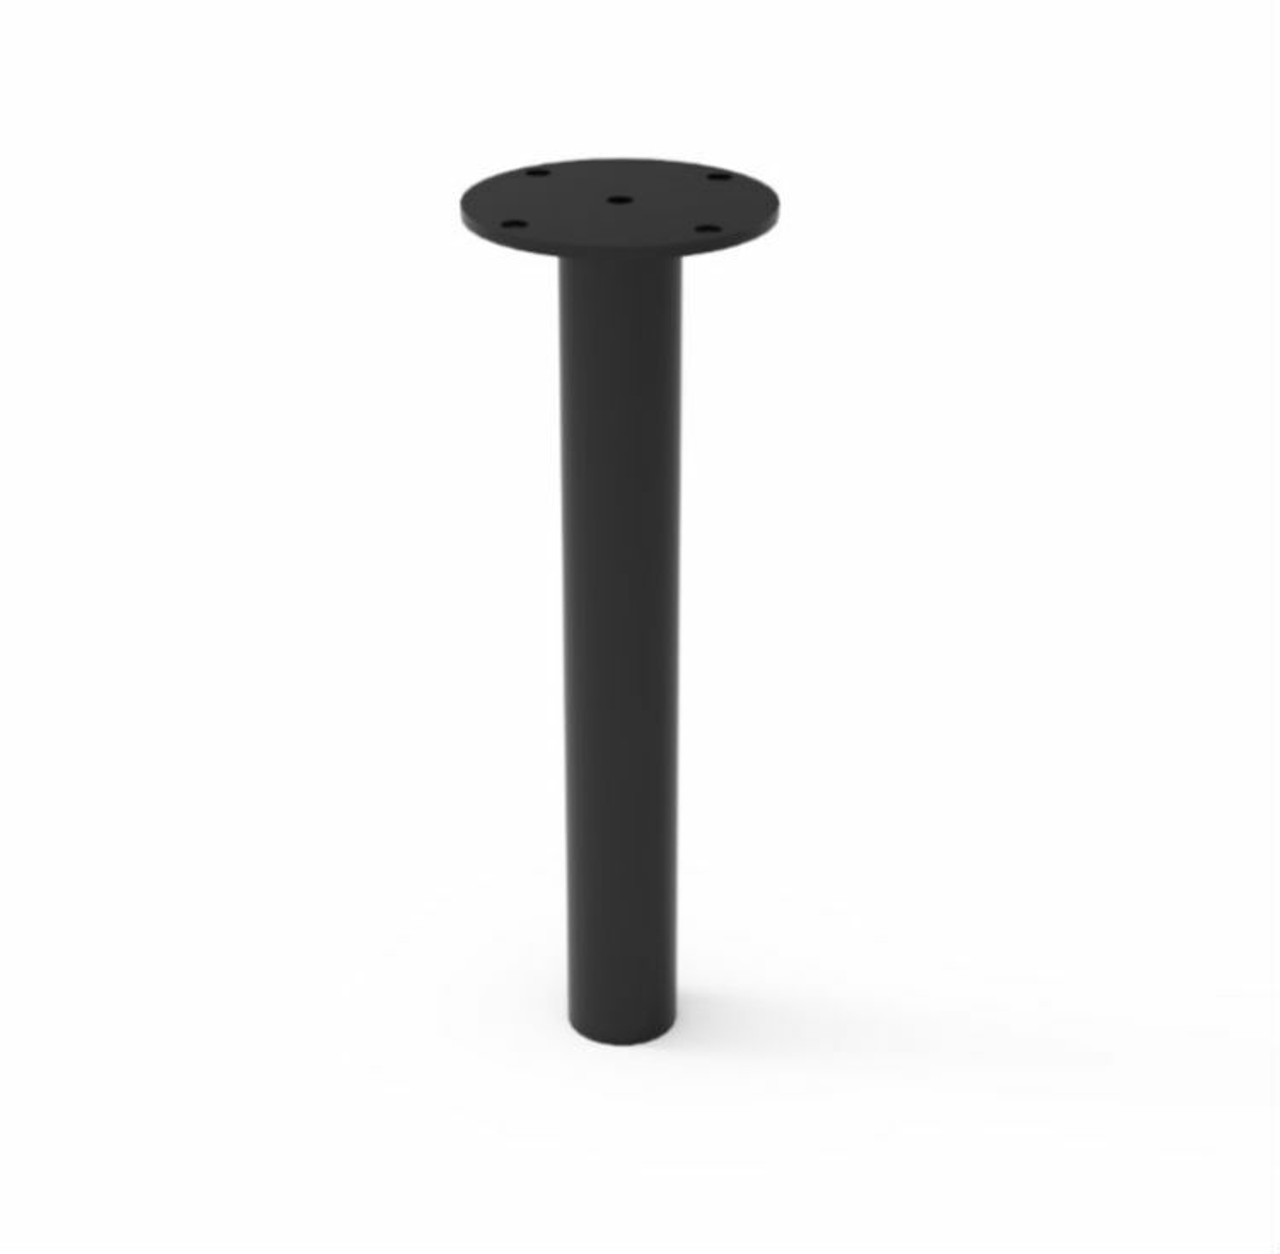 Inground Mount for 32 Gallon Trash Cans